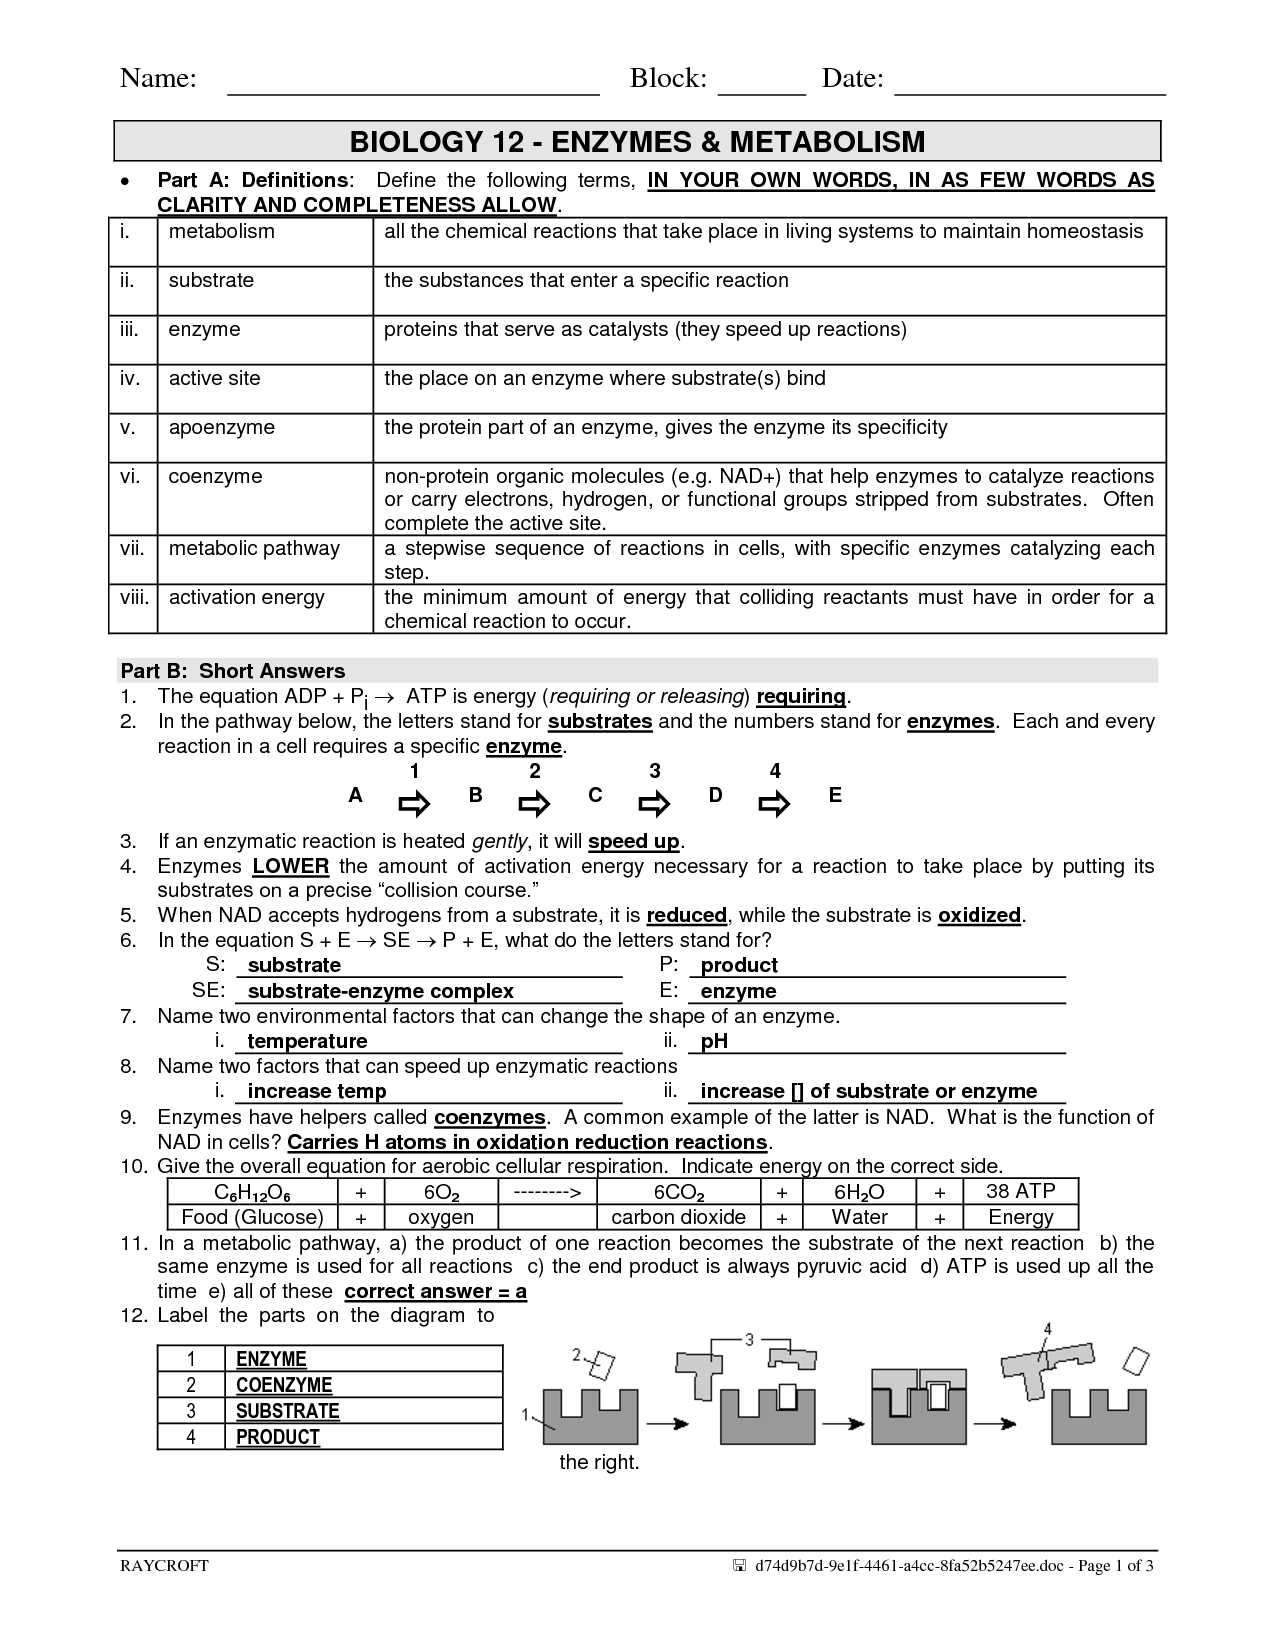 31 Chemical Reactions And Enzymes Worksheet Answers